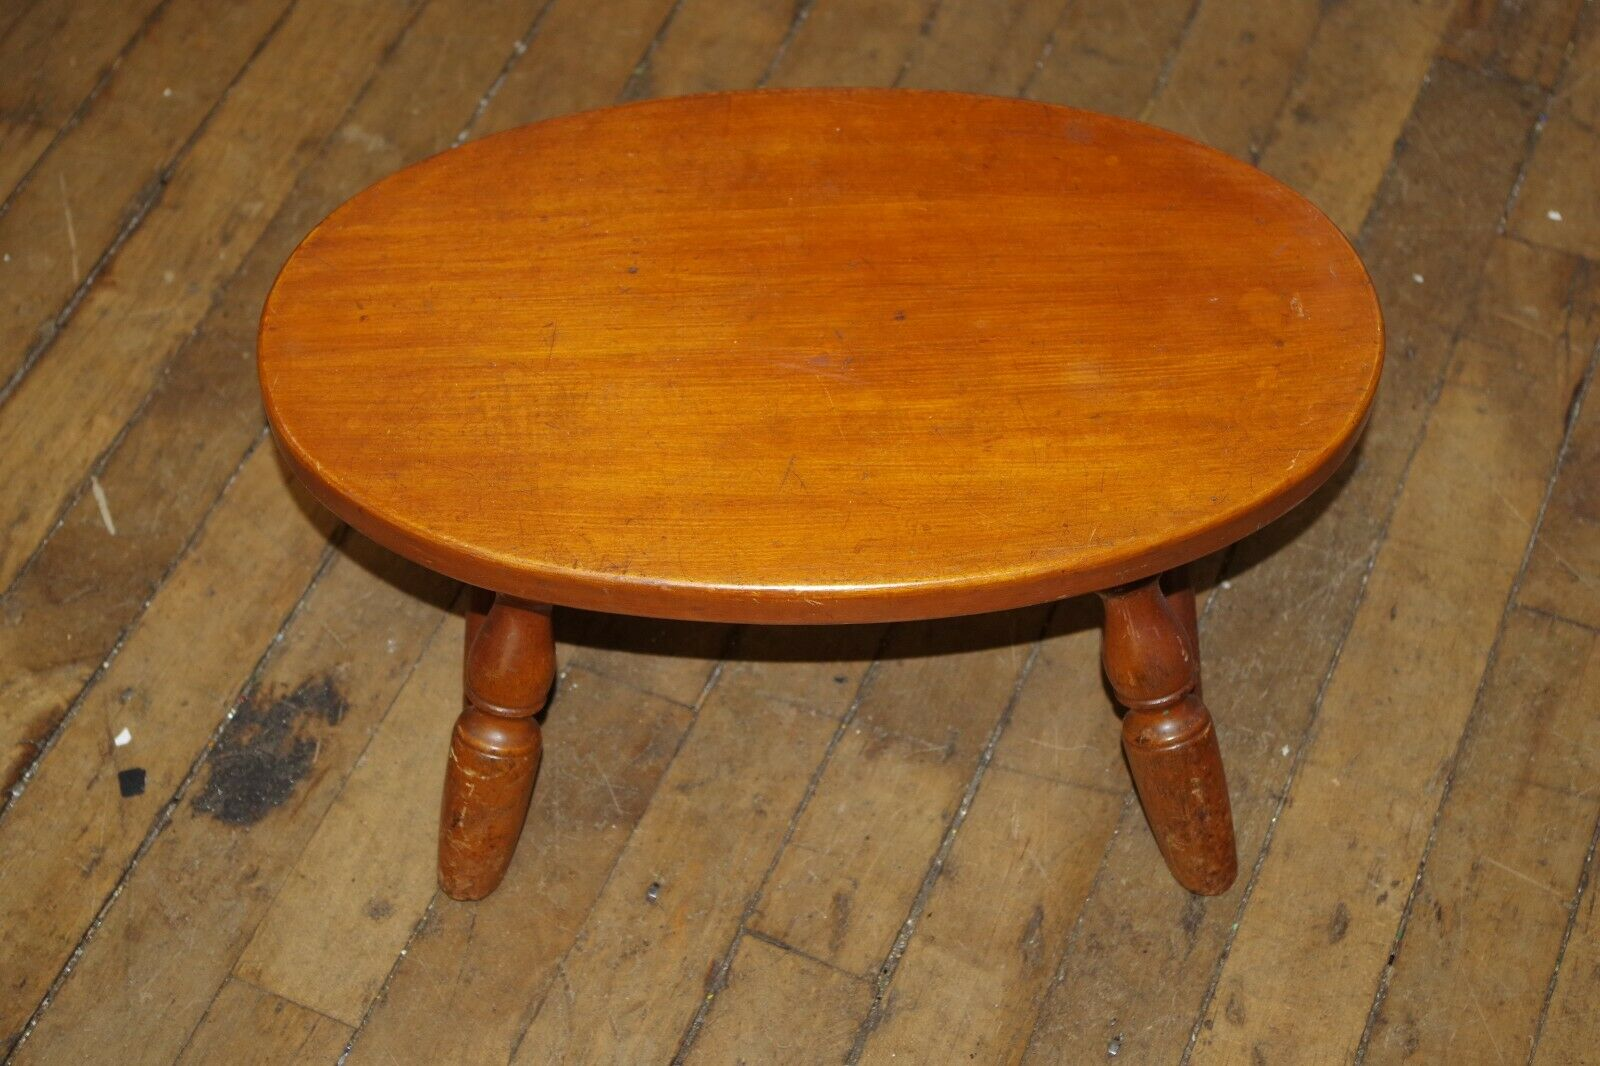 Vintage Antique WHITNEY 4 Spindle Legs Honey Wood Oval FOOT STOOL